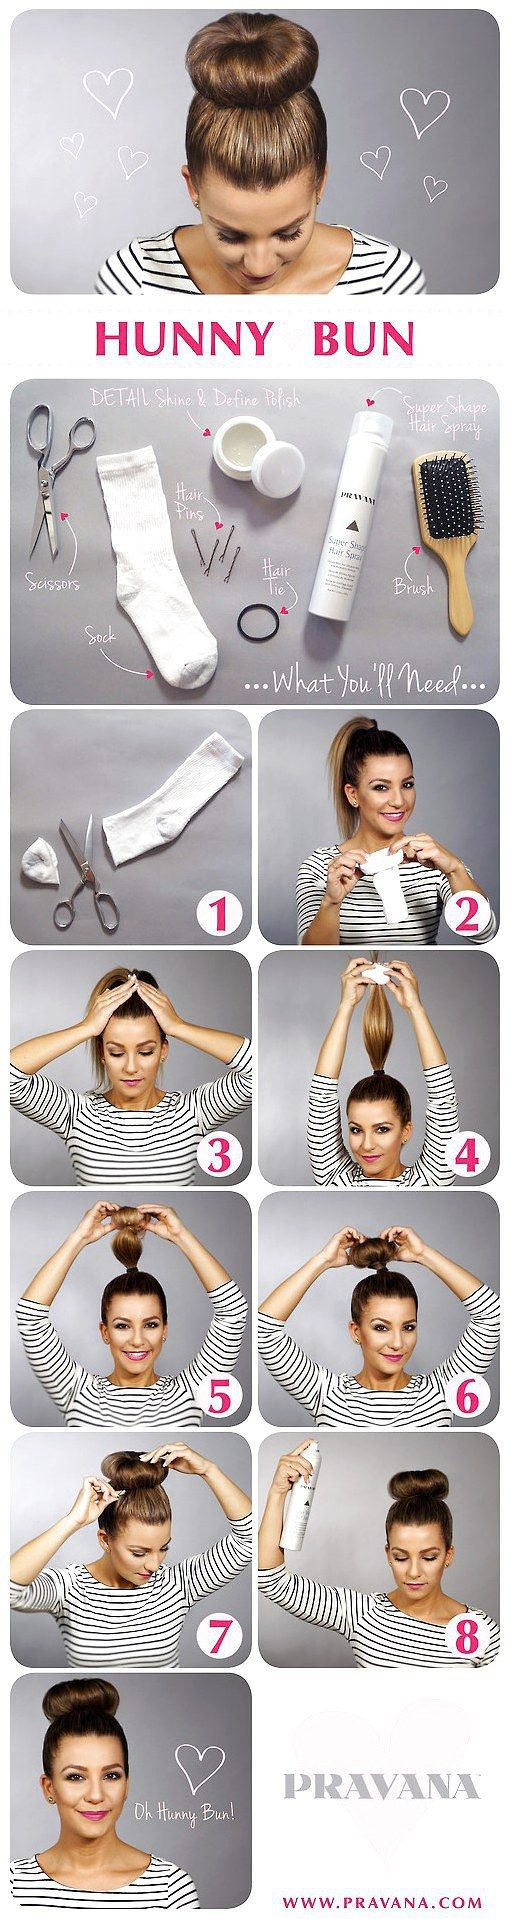 Sock bun tutorial- Makes fun curls when you pull it out    Takes me a few tries to roll my hair up right but the bun comes out nice and stays in well....